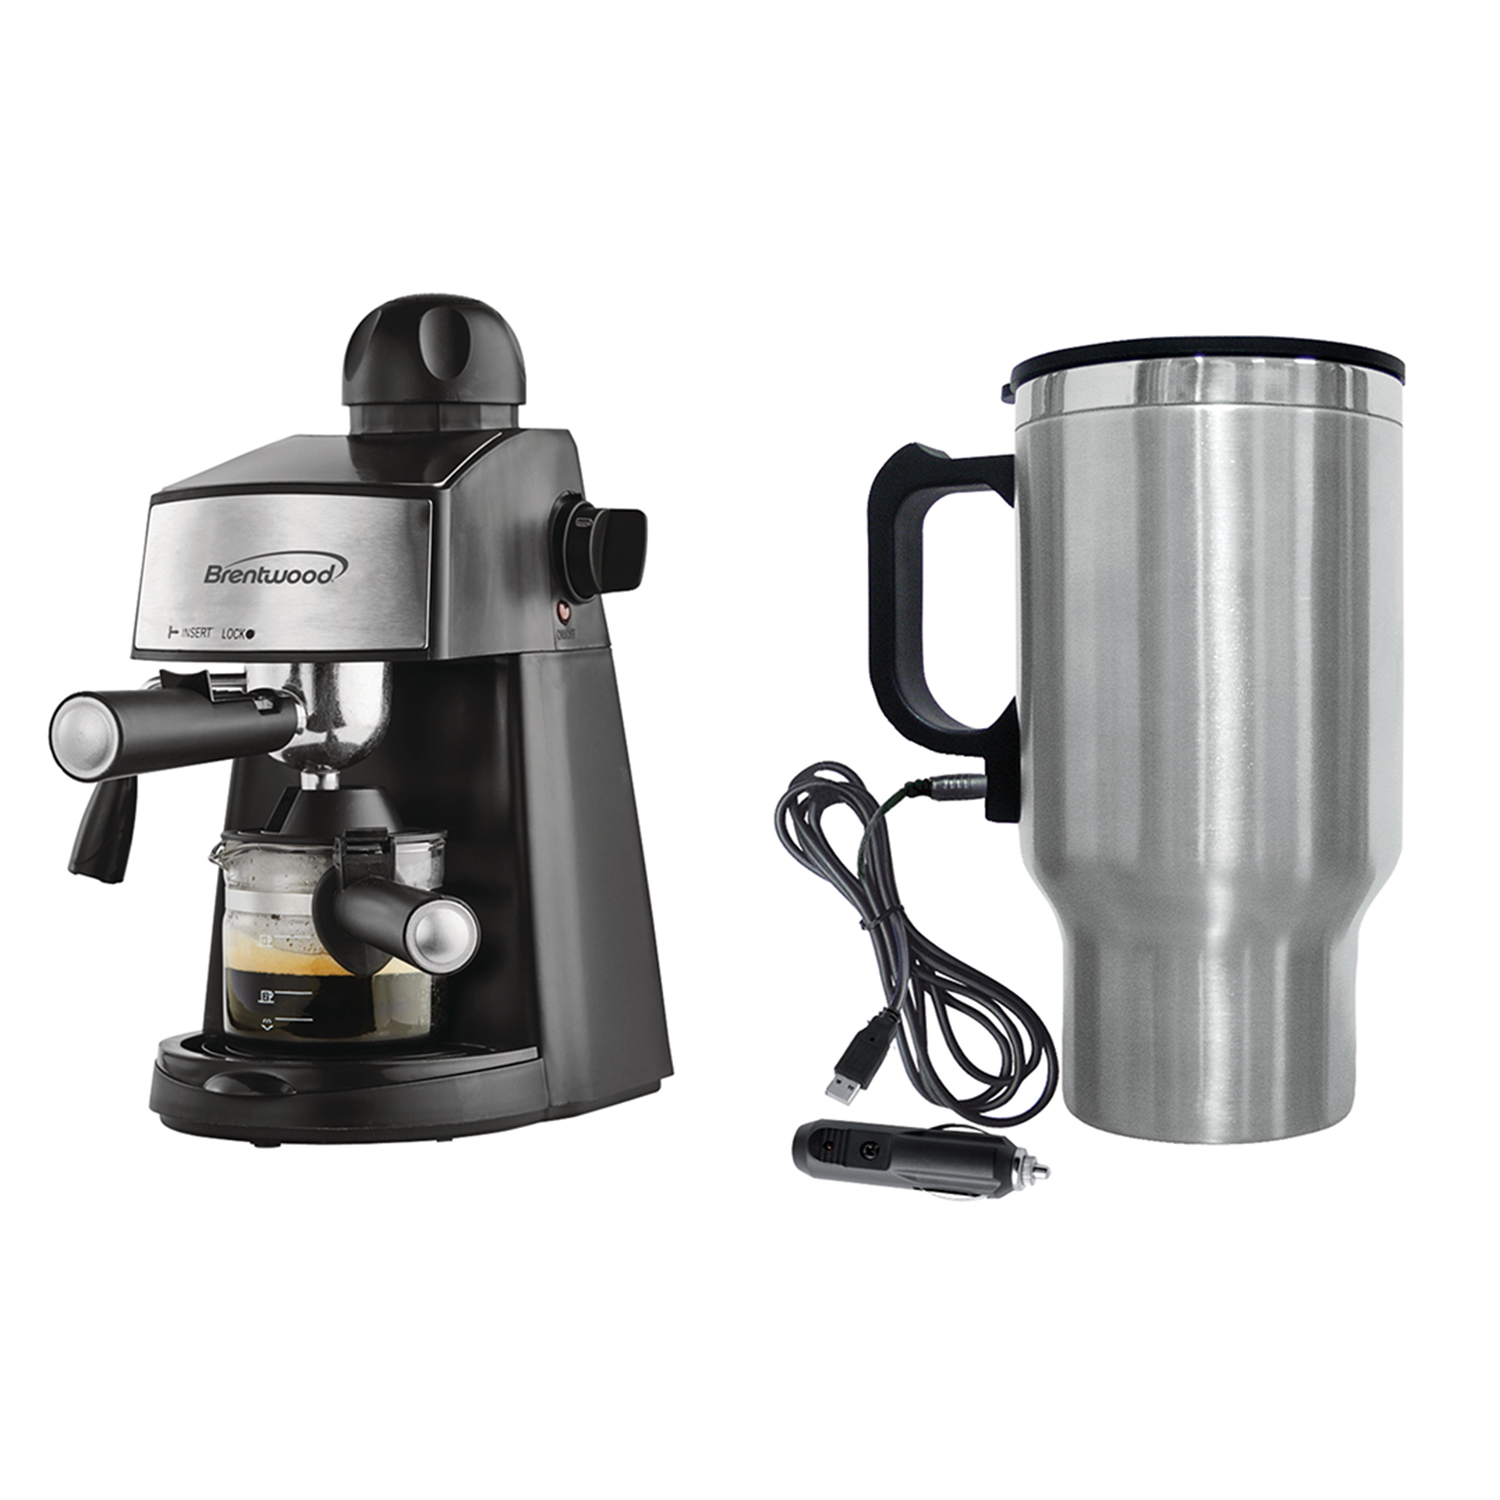 Brentwood Appliances GA-125 20-Ounce Espresso & Cappuccino Maker and CMB-16C 16-Ounce Stainless Steel Heated Travel Mug with 12-Volt Car Adapter Bundle